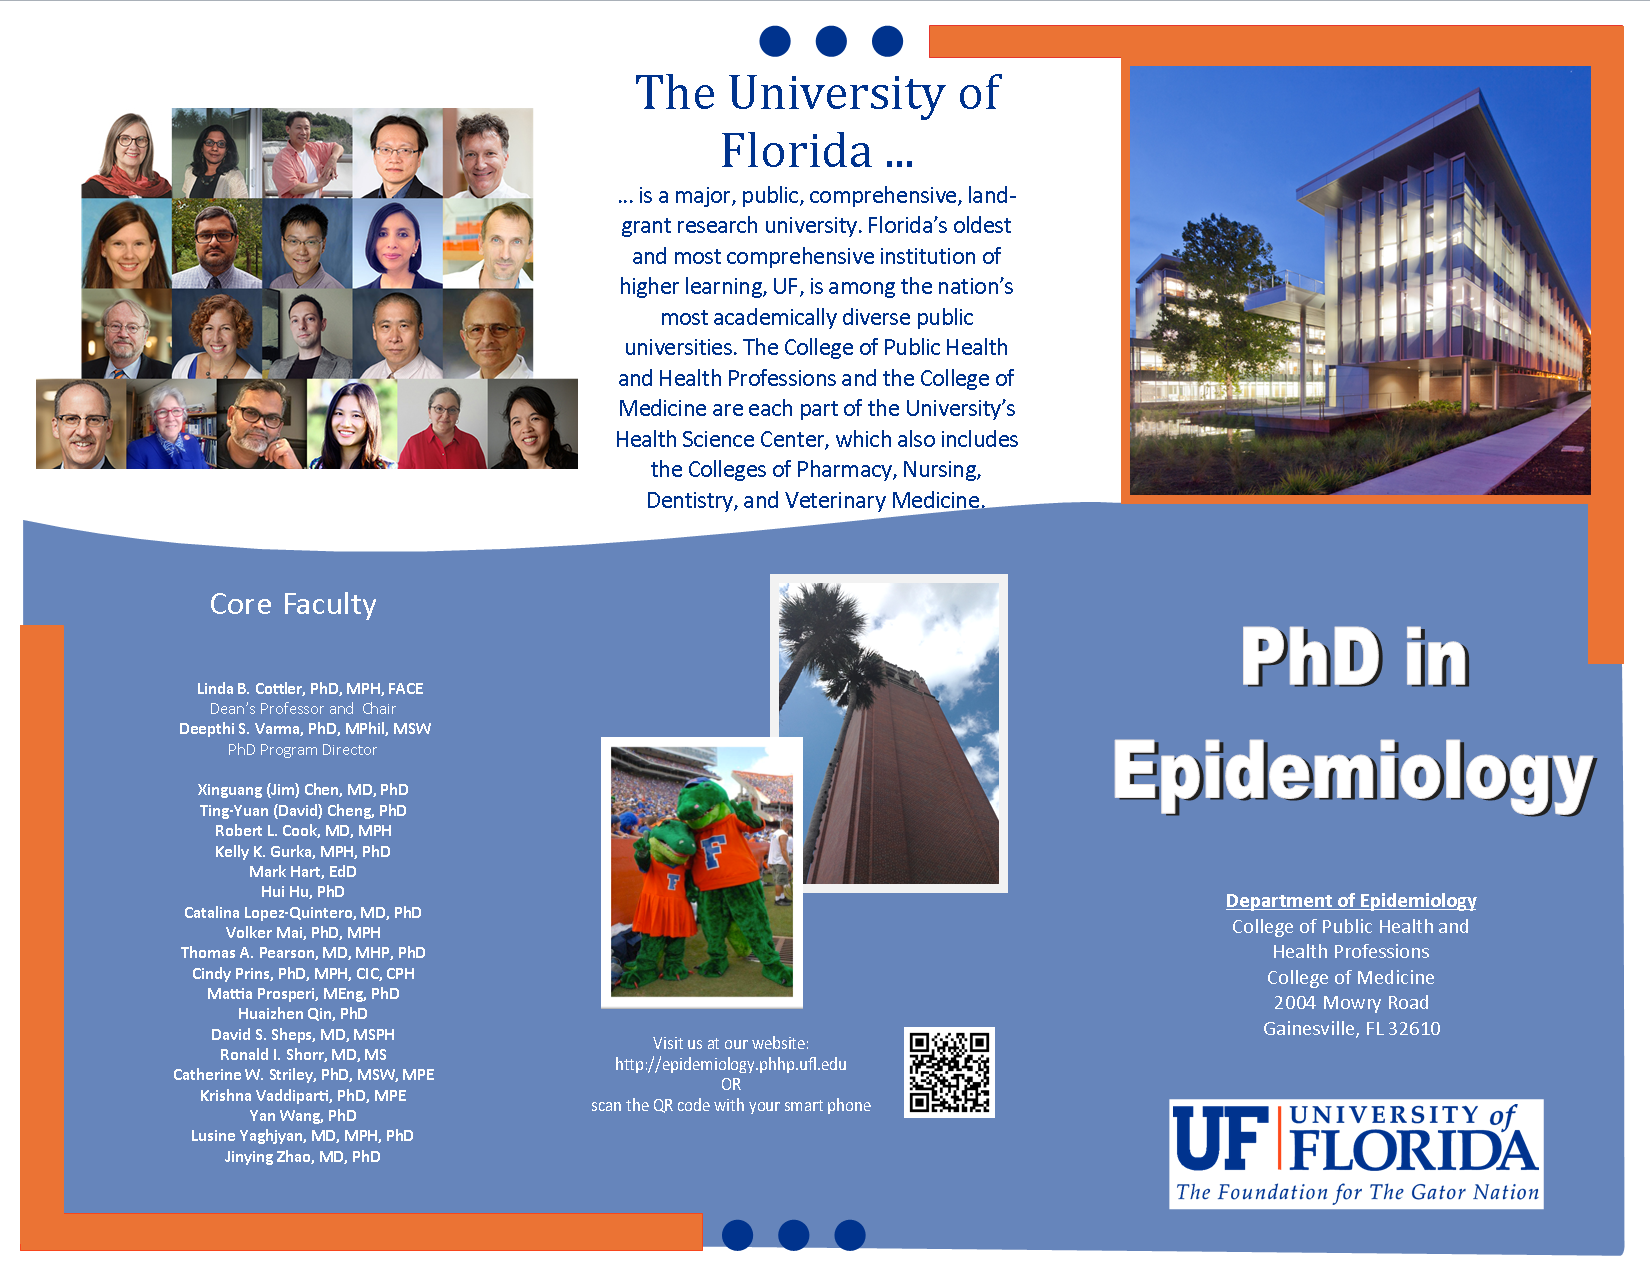 PhD in Epidemiology Brochure